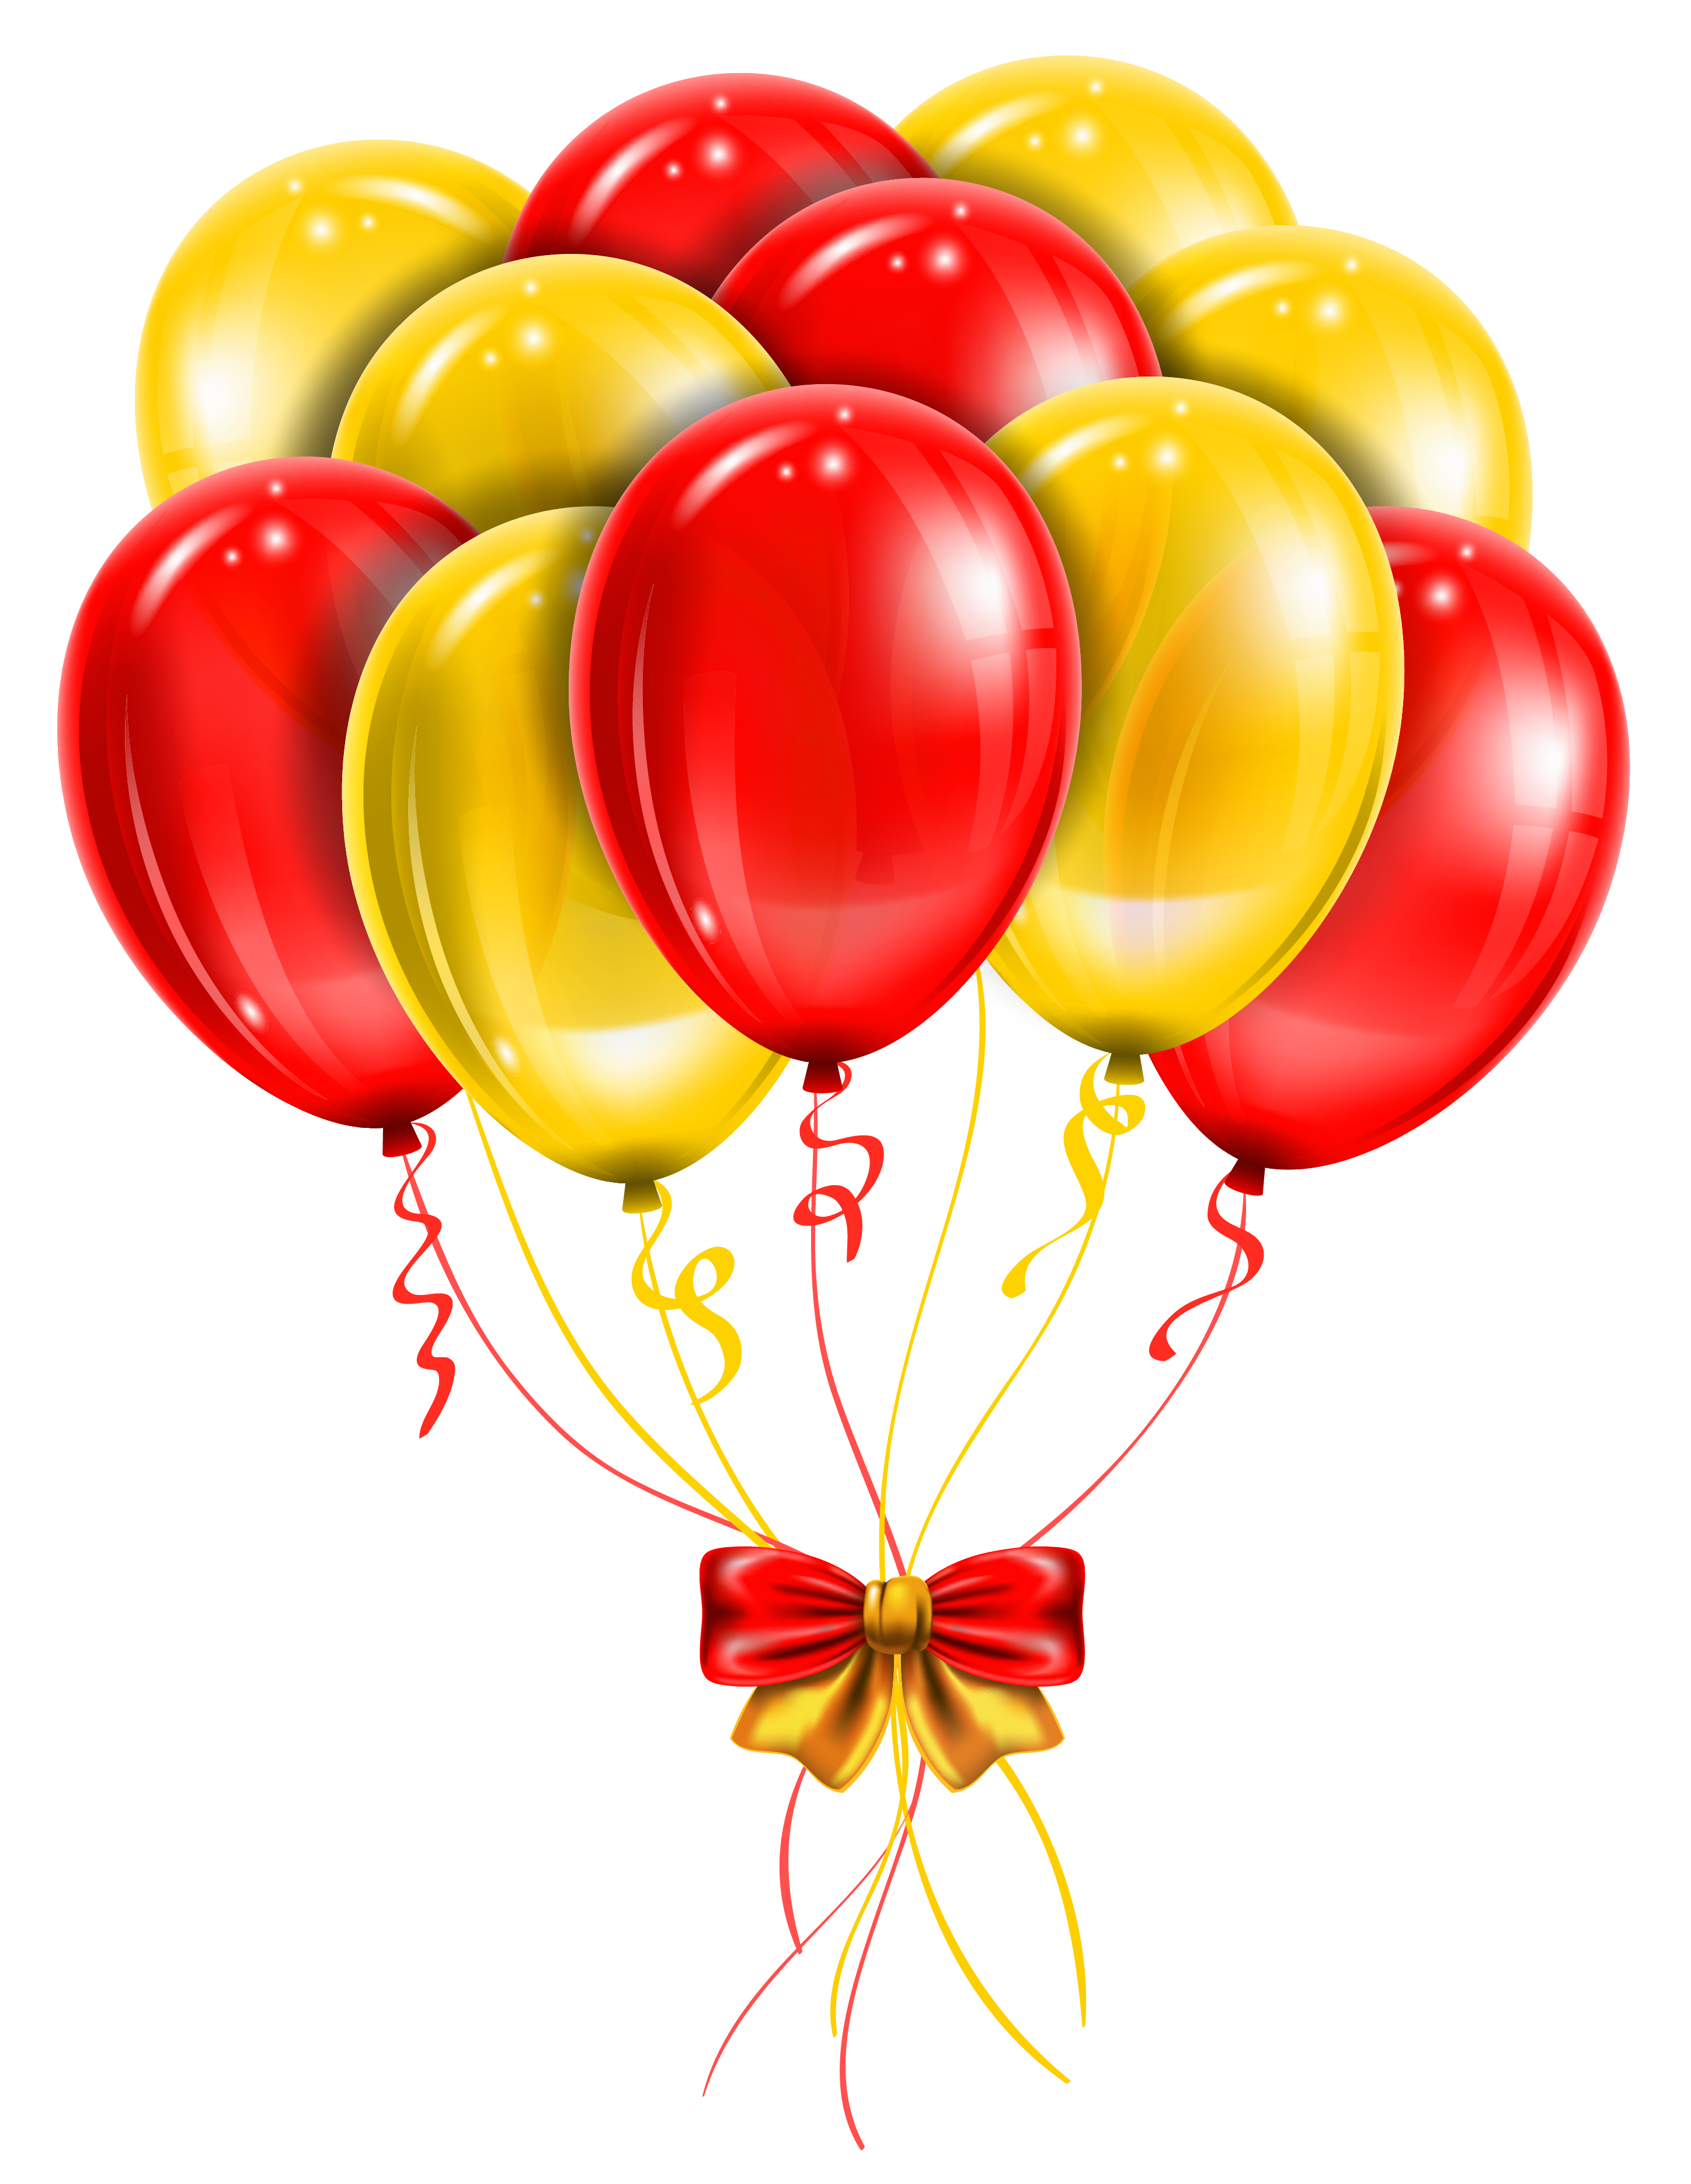 9 balloons clipart clip art download Balloon Red Clip art - Transparent Red Yellow Balloons PNG Picture ... clip art download